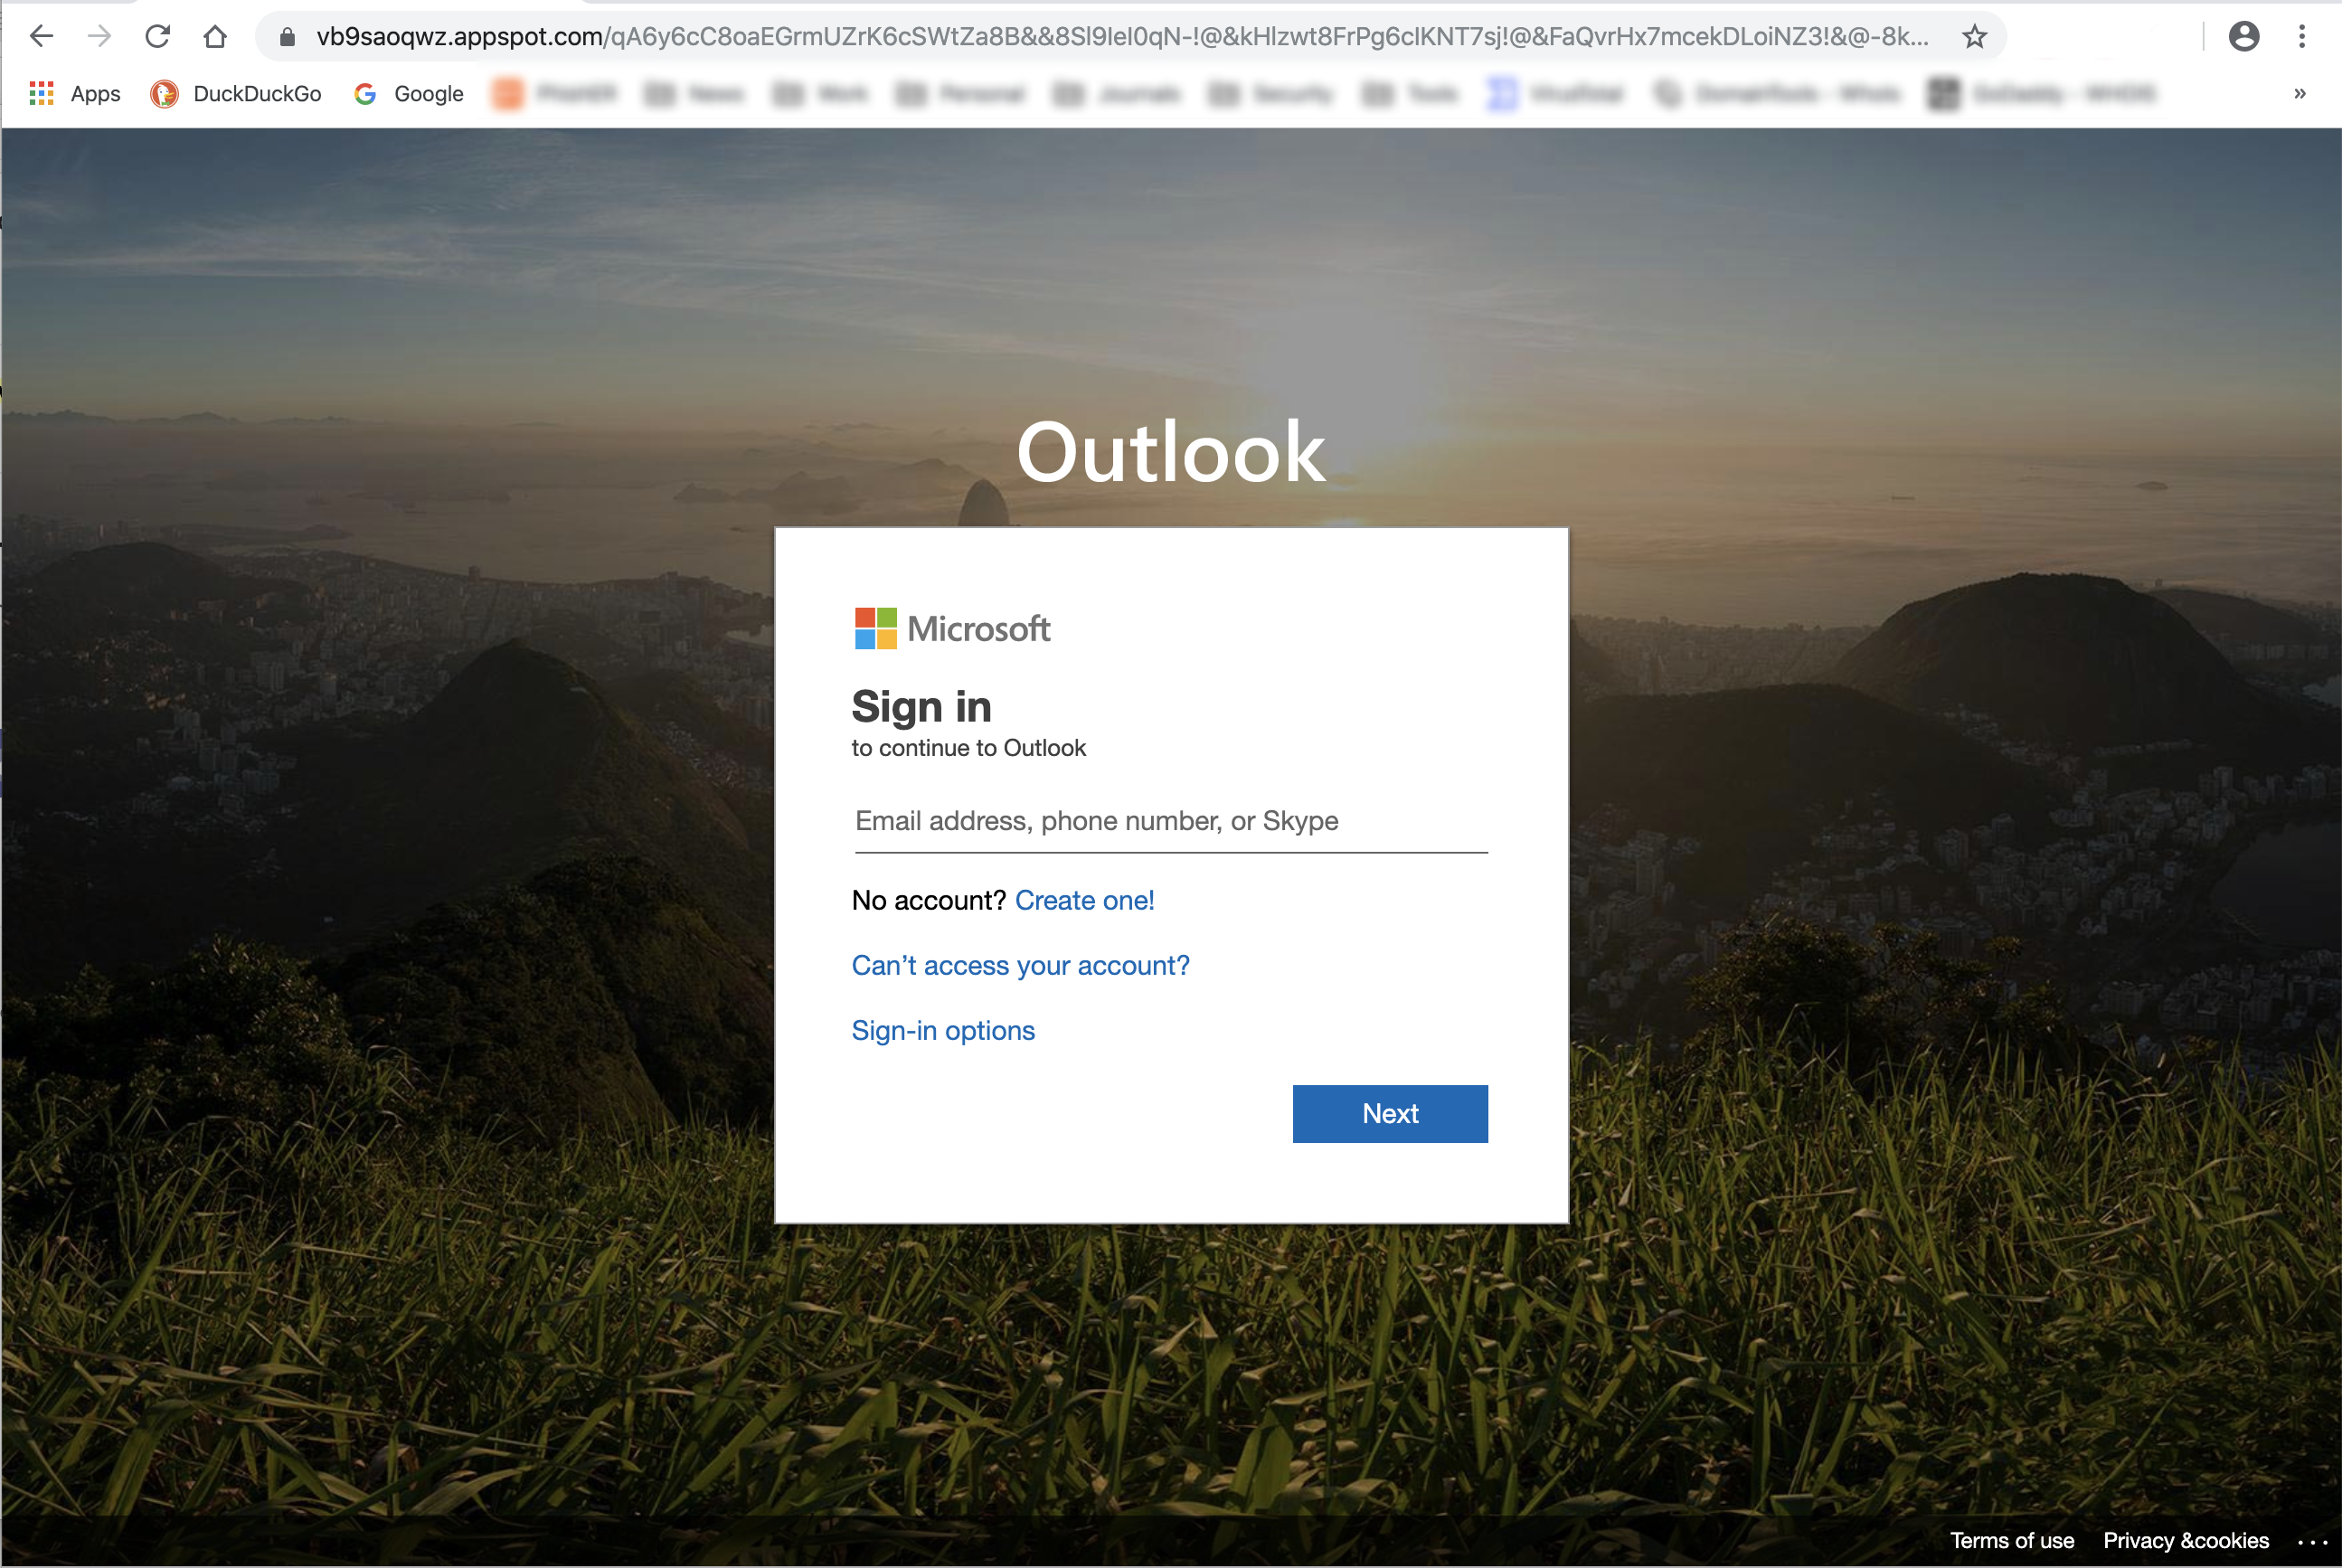 CyberSecurity-Phishing-Microsoft-Teams-Security-Awareness-Training-Spoofed-Website